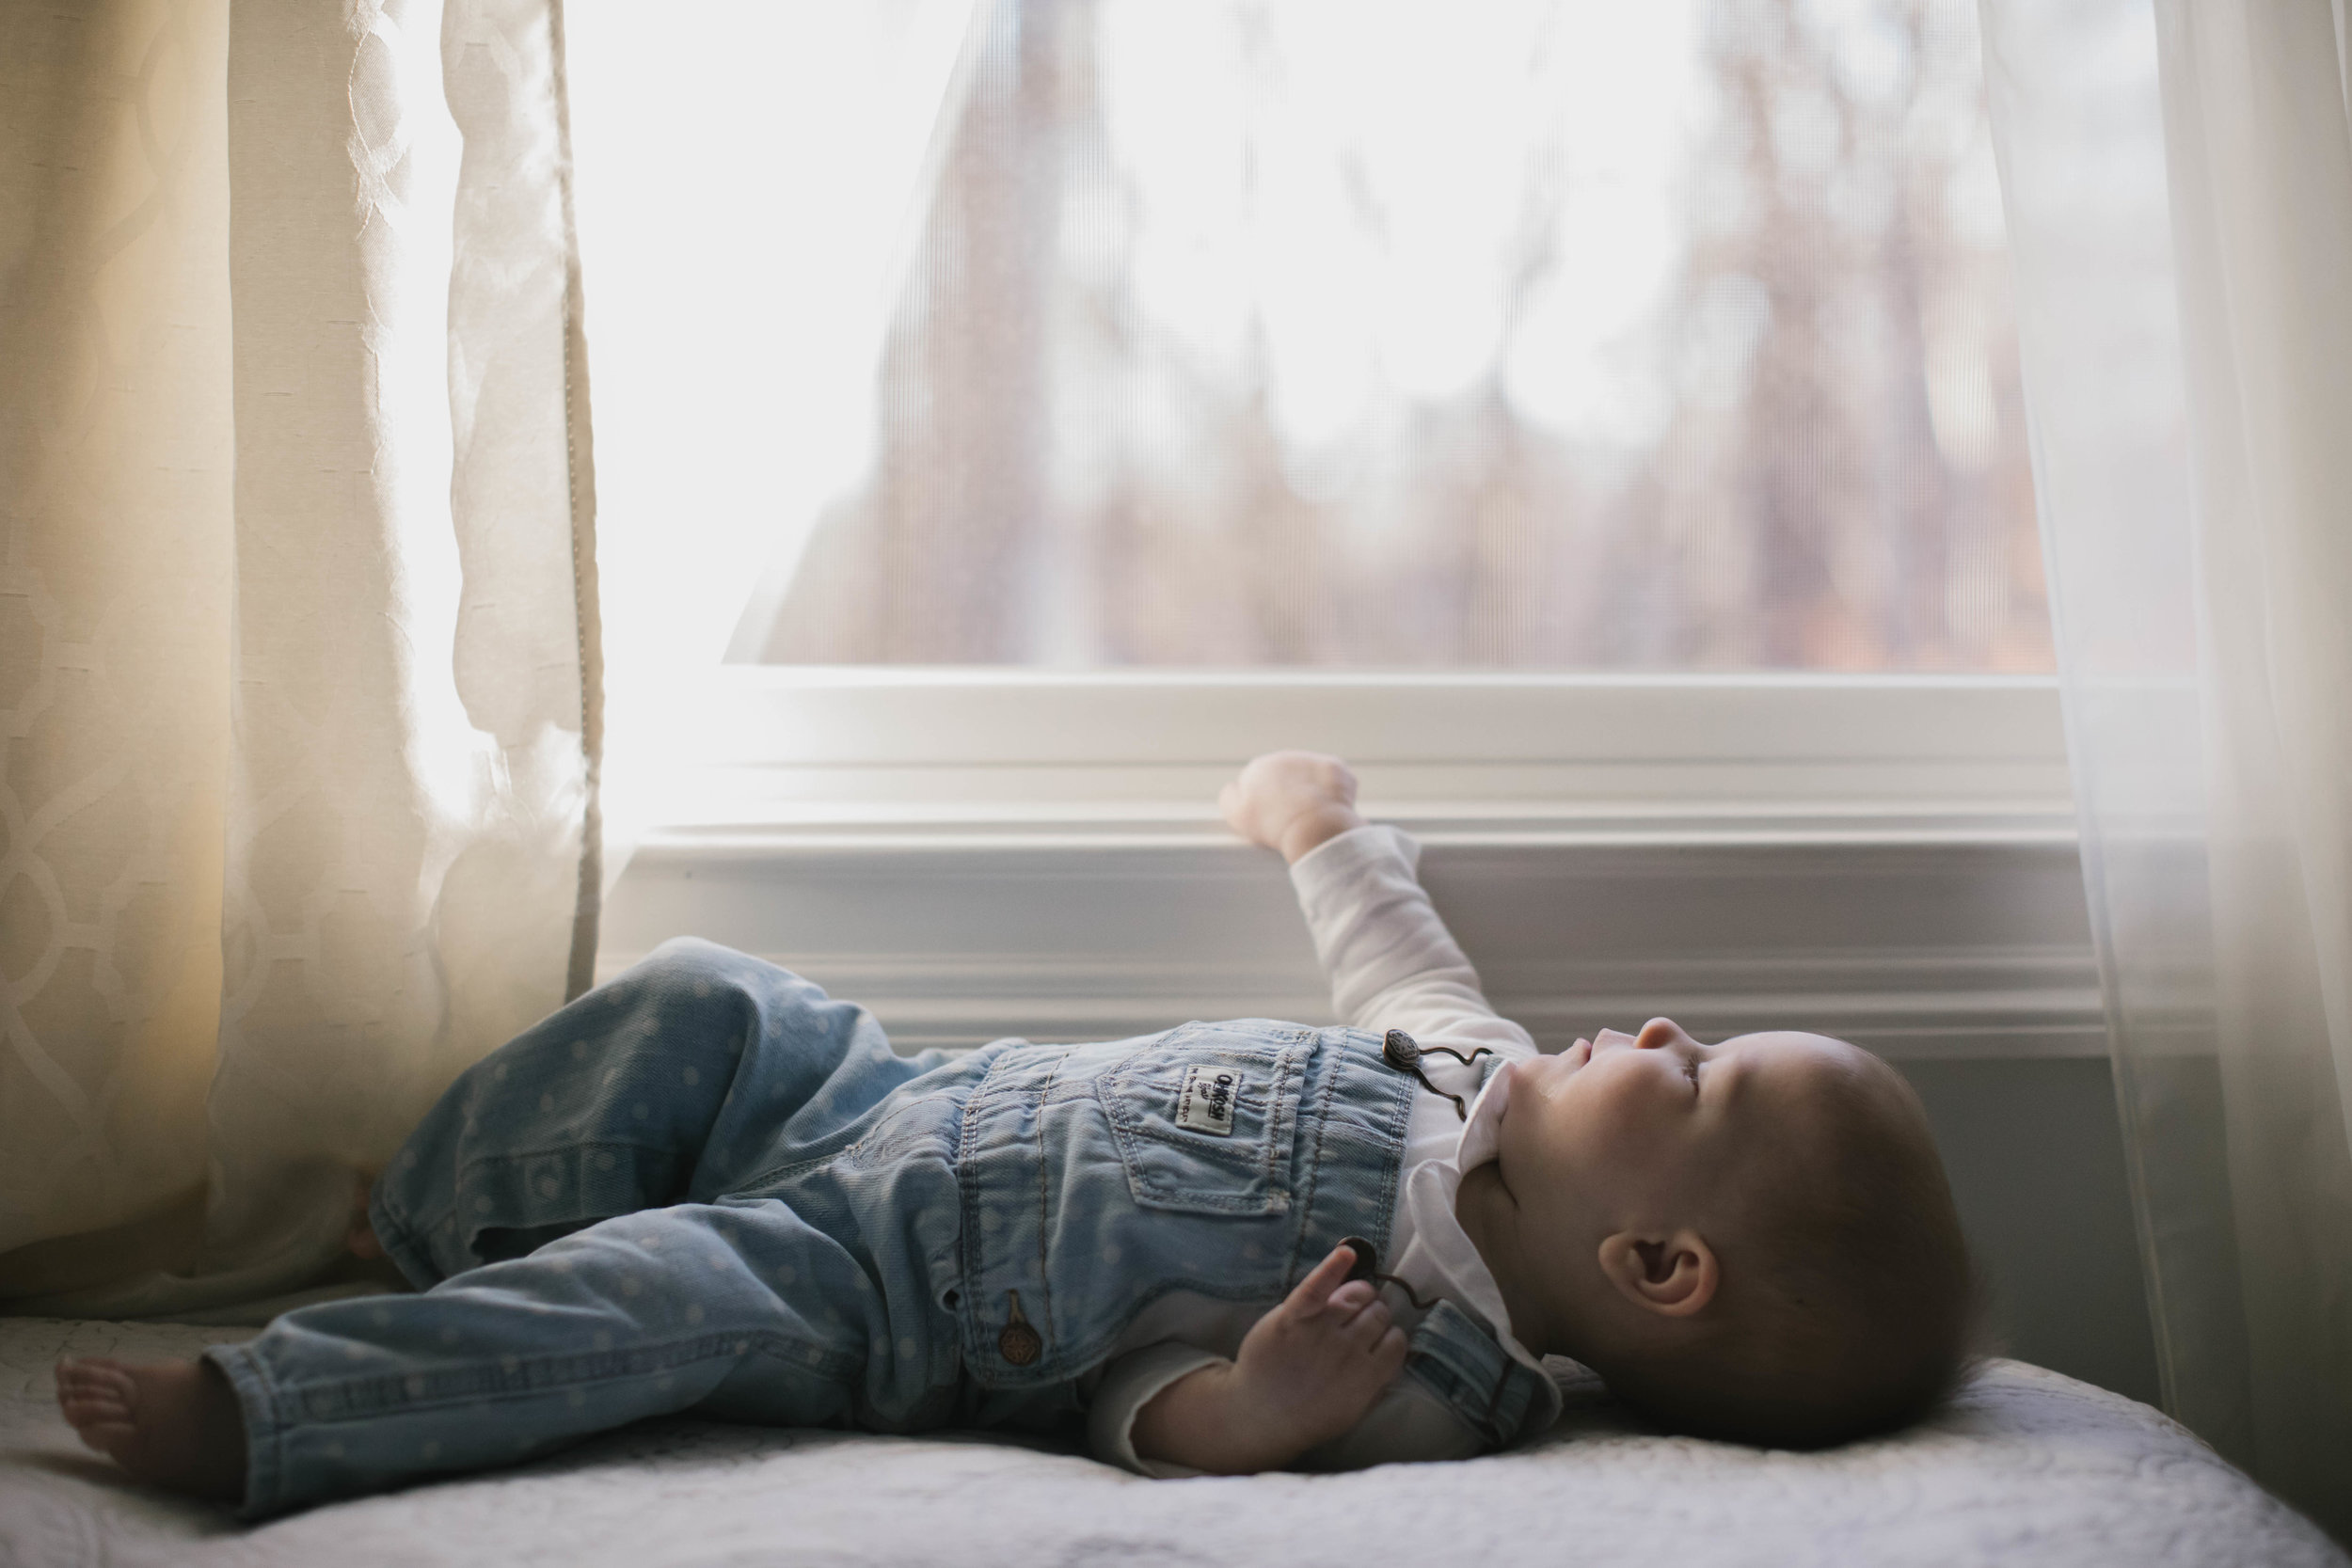 Lucy at 7 months | baby photographer | Durham, NC photographer | Merritt Chesson